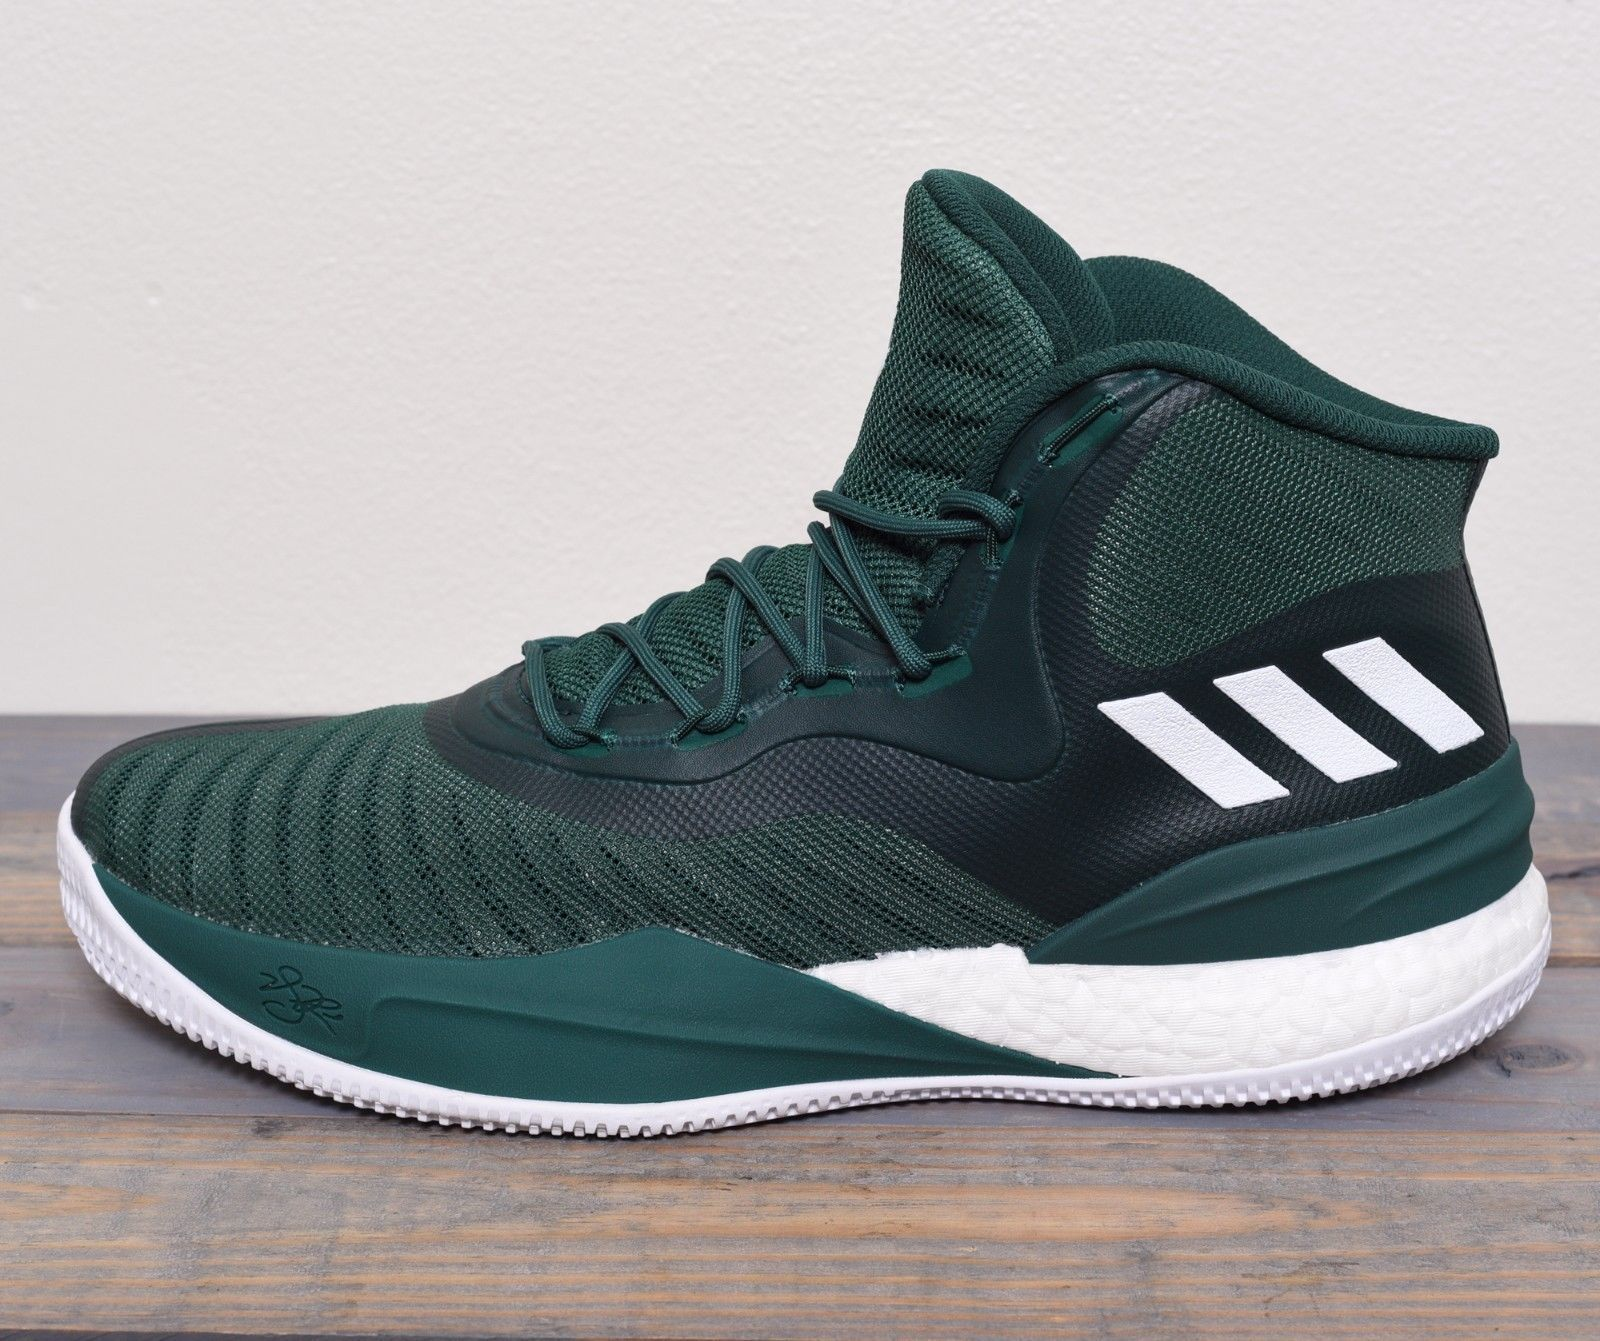 6cd7e7986b87 Adidas D Rose Basketball Shoes Men Size 11.5 Sneaker NBA Green White New  CQ1628